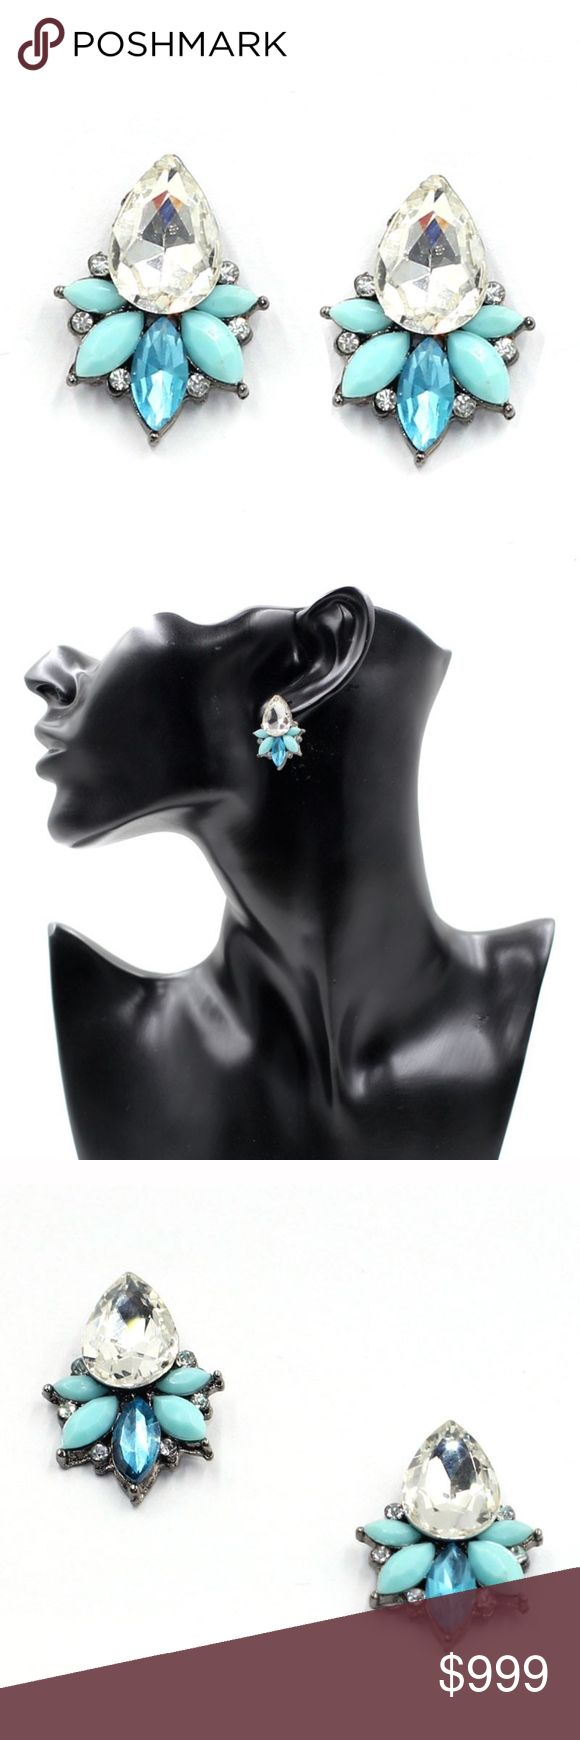 COMING SOON!! Blue & Clear Crystal Dangle Earrings Coming Soon!! (Price available upon arrival). Brand new in original packaging.  Beautiful gem drop cluster earrings feature teardrop / pear clear, aqua/turquoise, & neon sky blue crystal embellishments, these fun crystal studs are ideal for a formal or casual holiday affair! With their dainty & intricate floral design, these fabulous jewel statement earrings are both edgy & elegant. They are set in gunmetal silver zinc alloy, with…